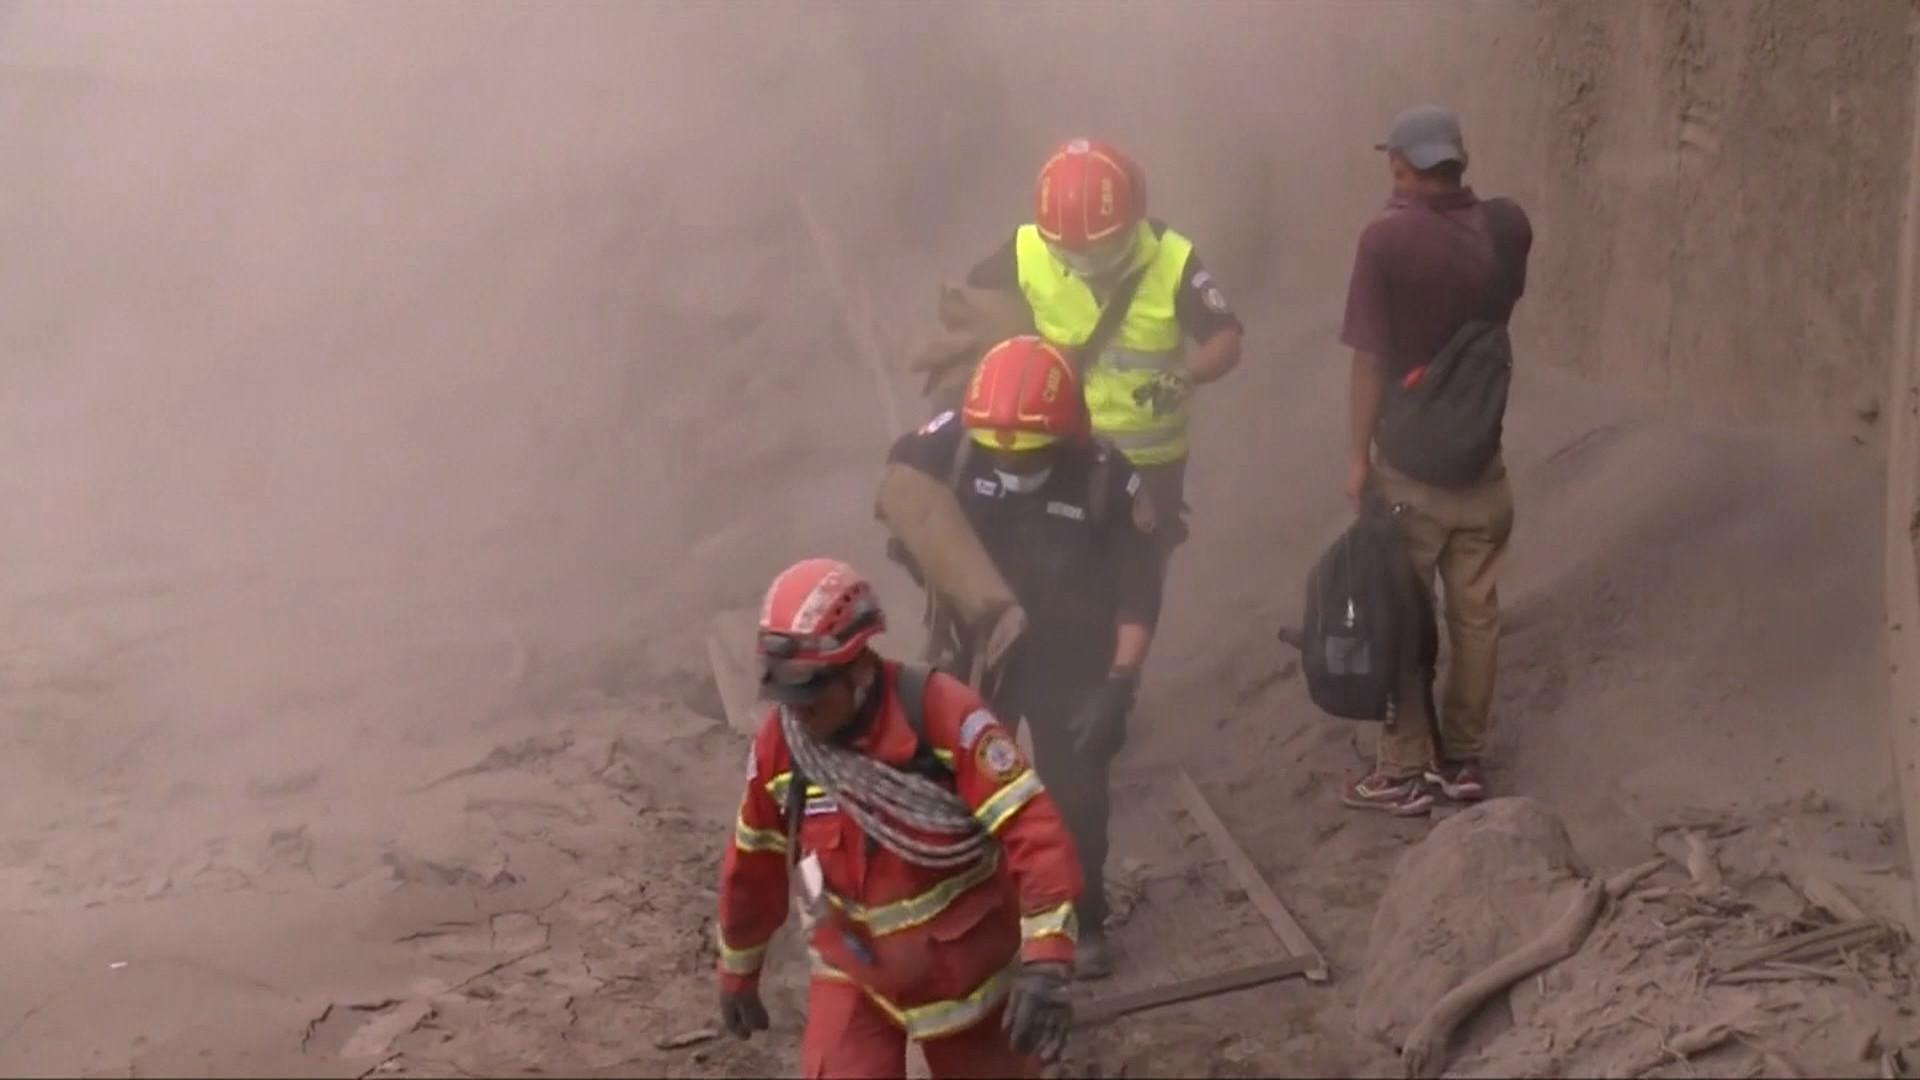 At least 65 killed, 3,100 evacuated after Guatemala volcano eruption